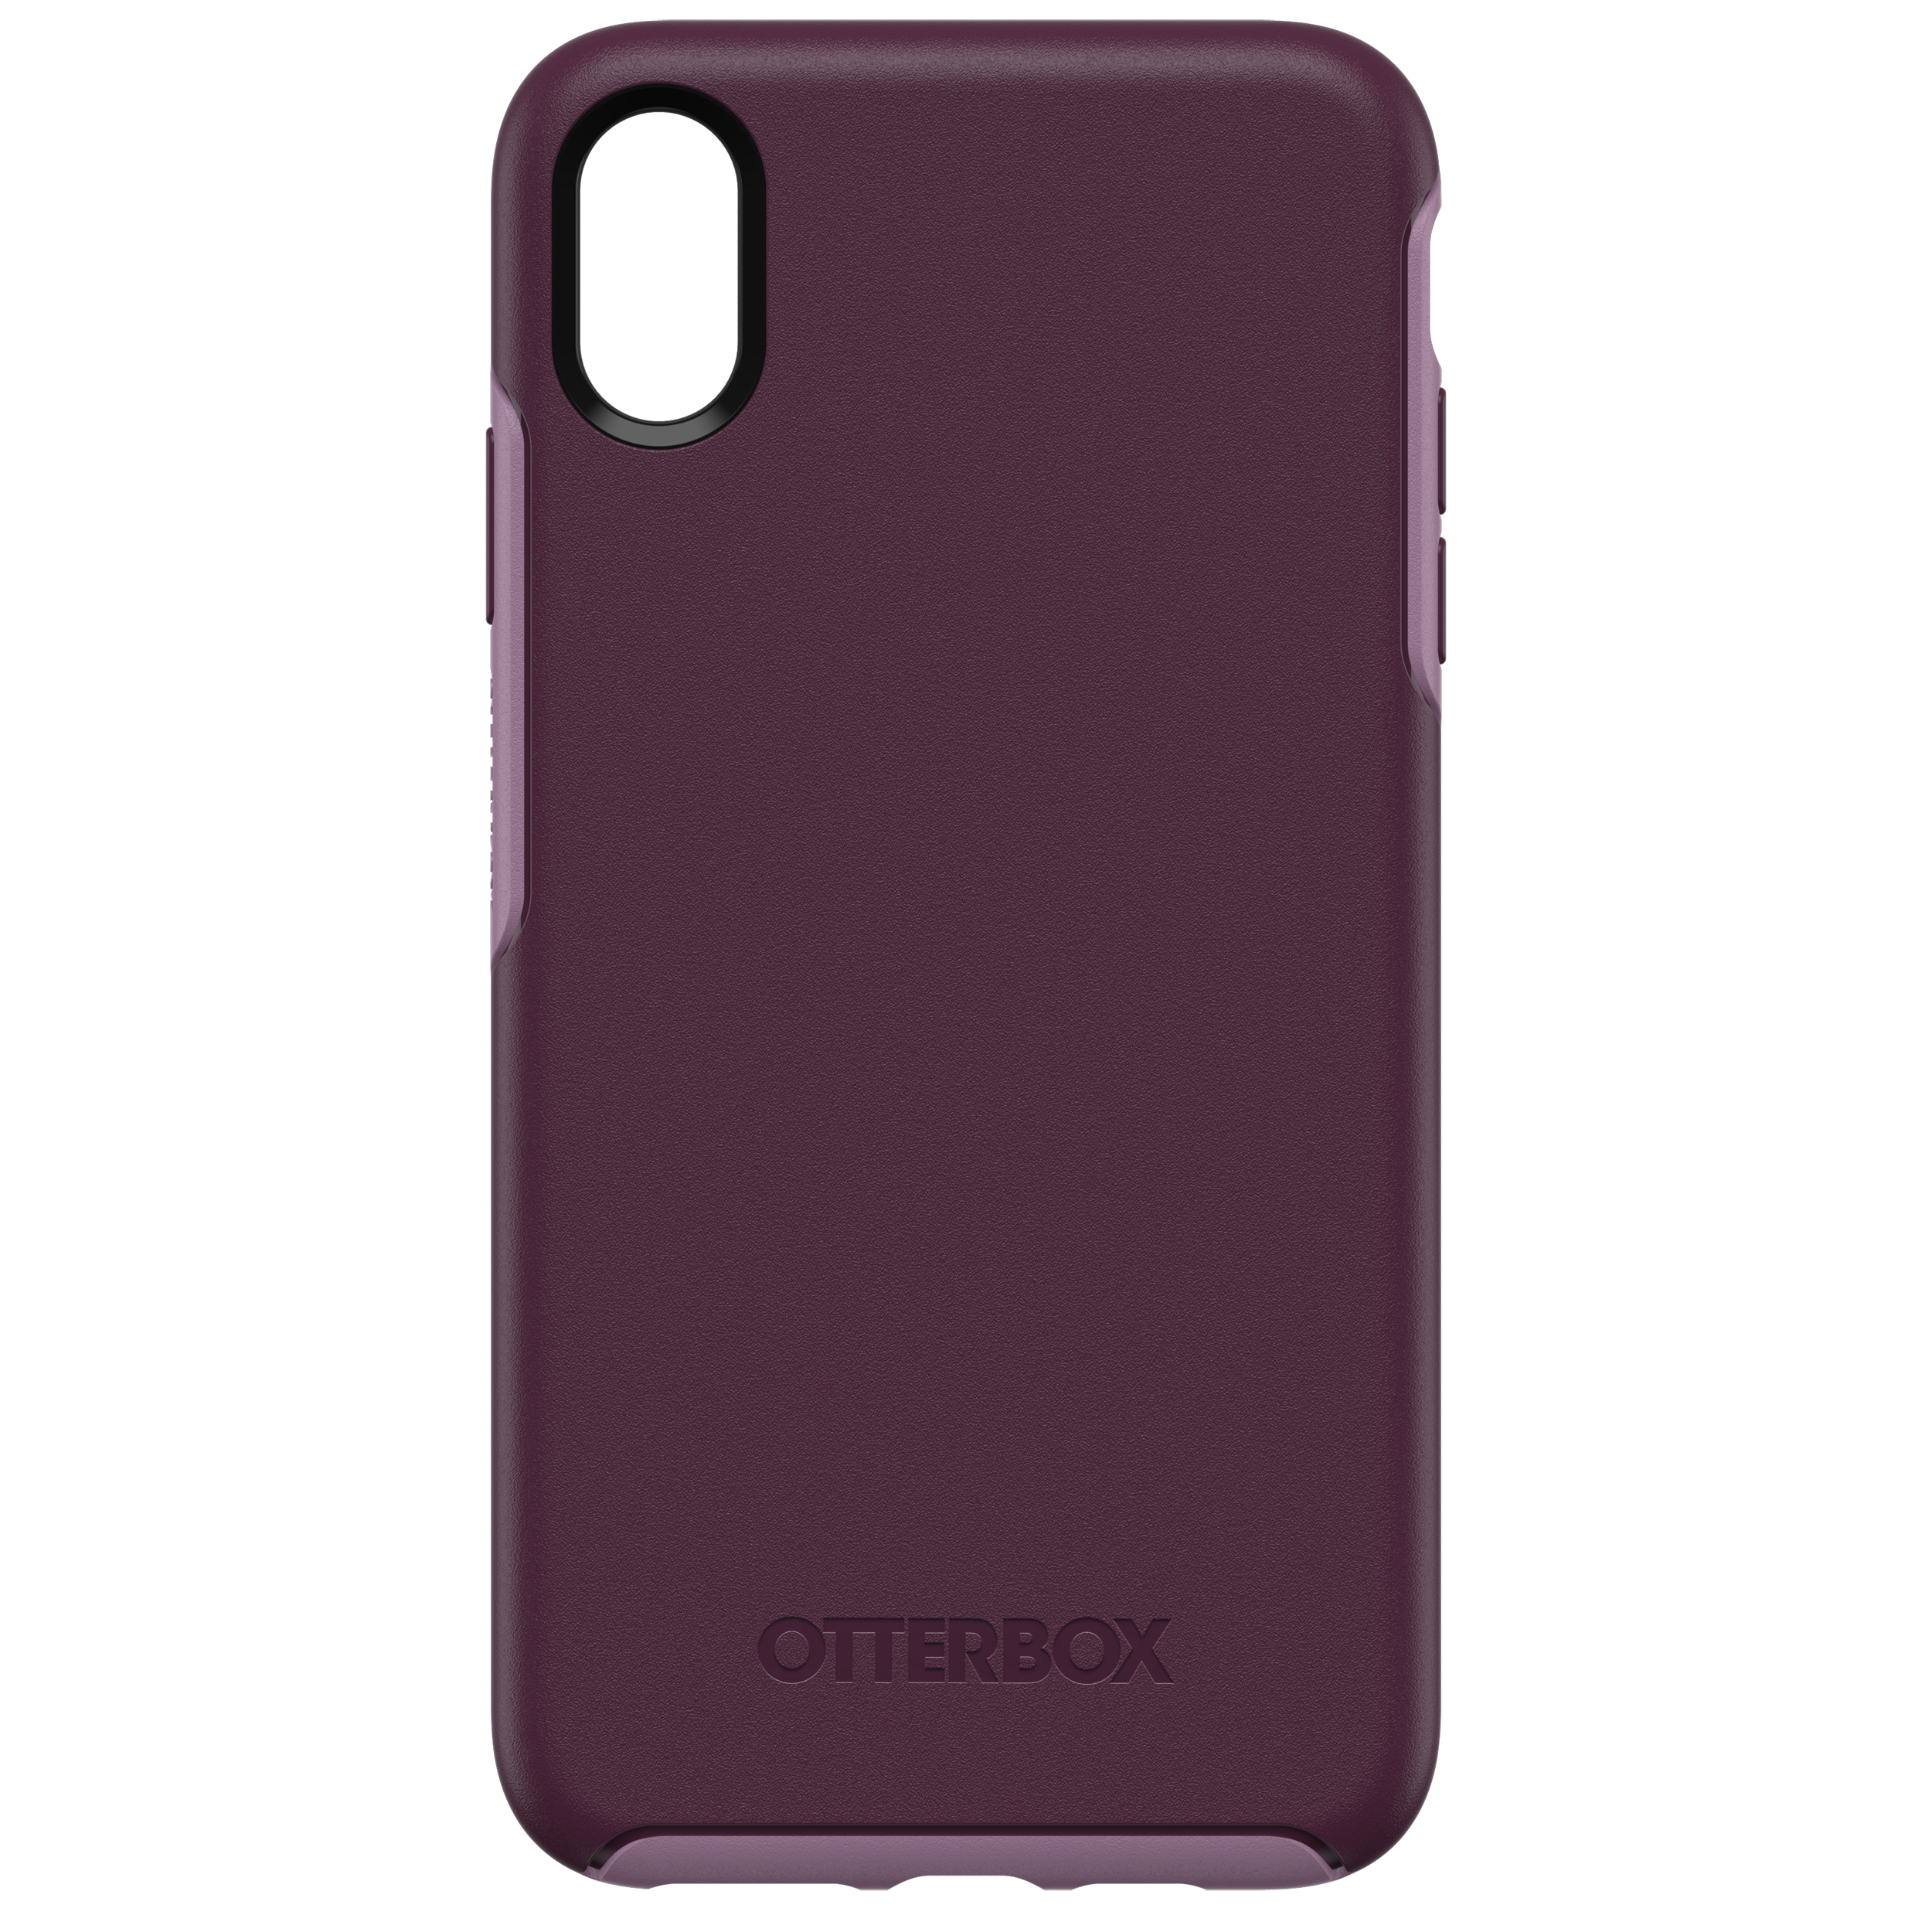 Otterbox Symmetry Series Case for iPhone Xs Max, Tonic Violet by OtterBox